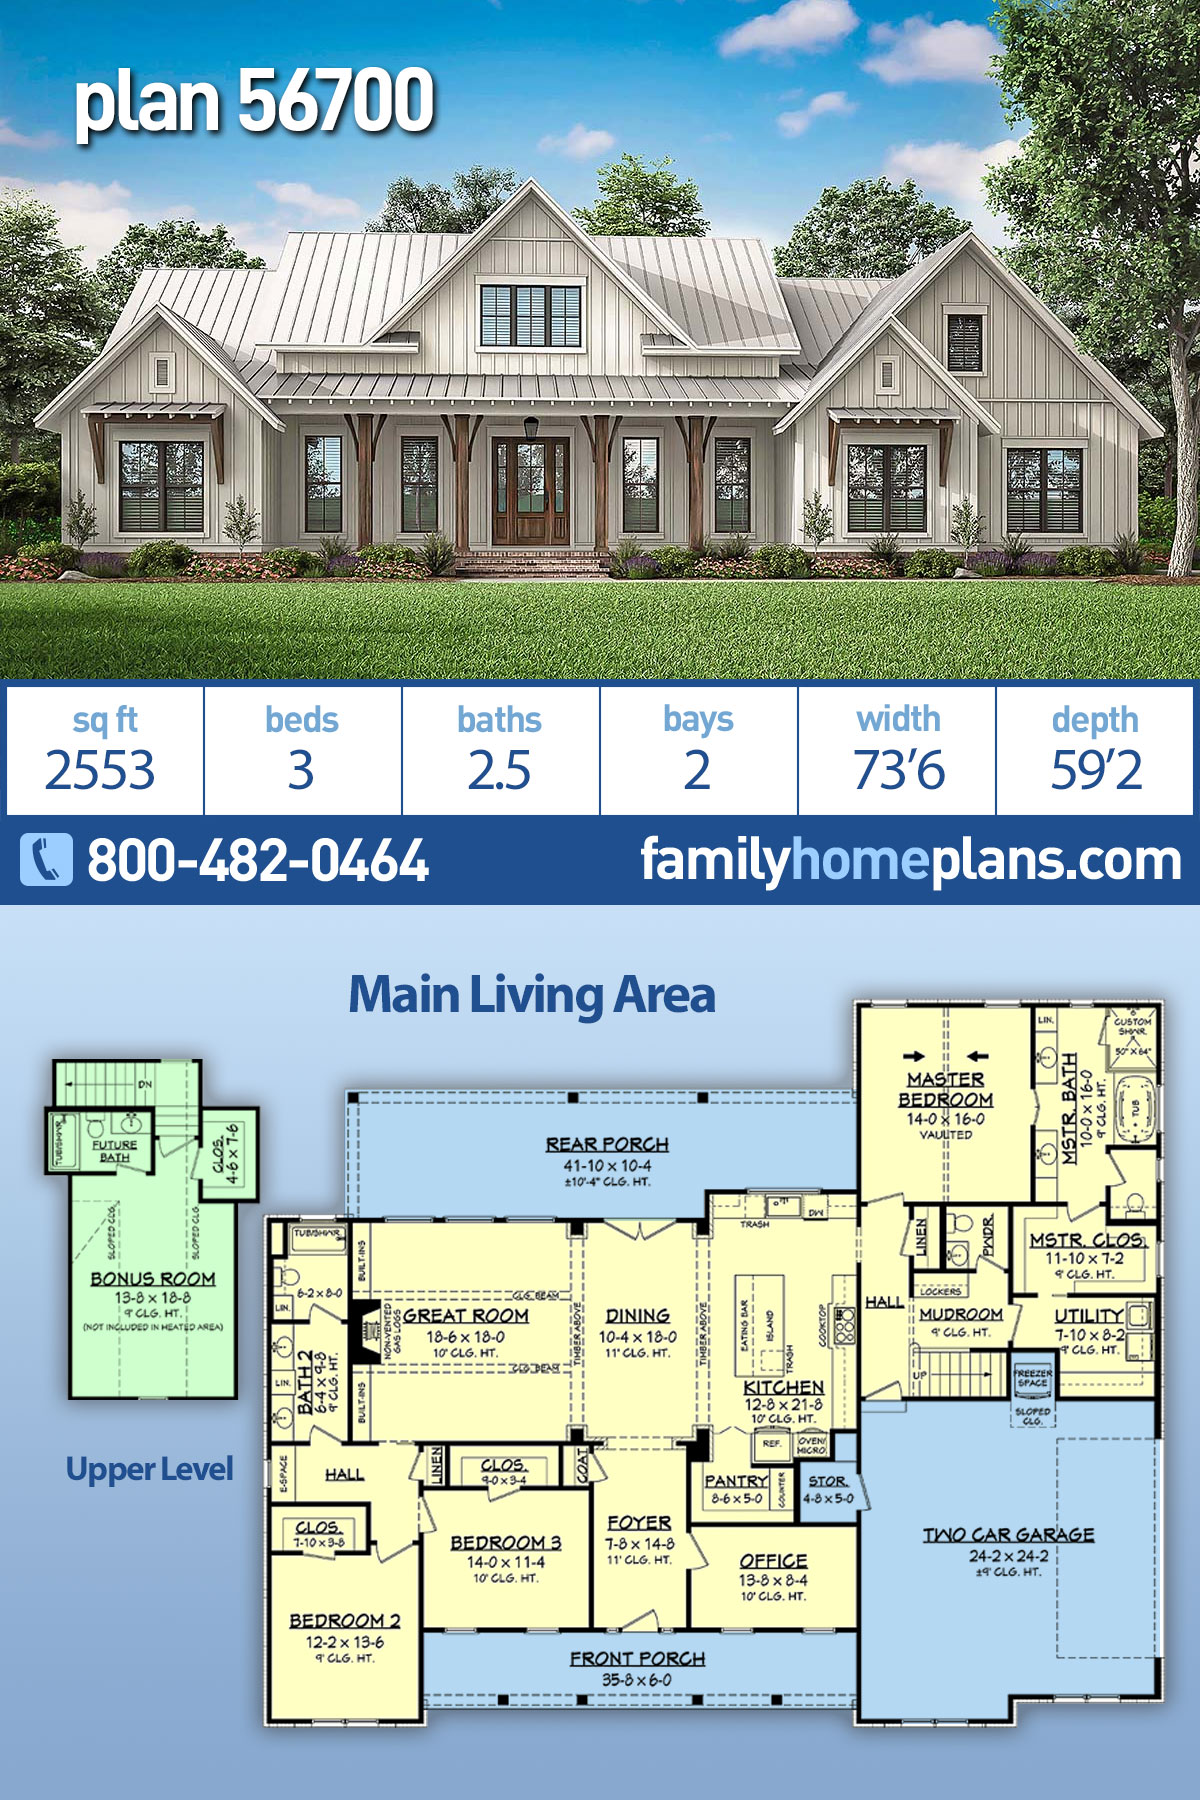 Country , Craftsman , Modern Farmhouse House Plan 56700 with 3 Beds, 3 Baths, 2 Car Garage